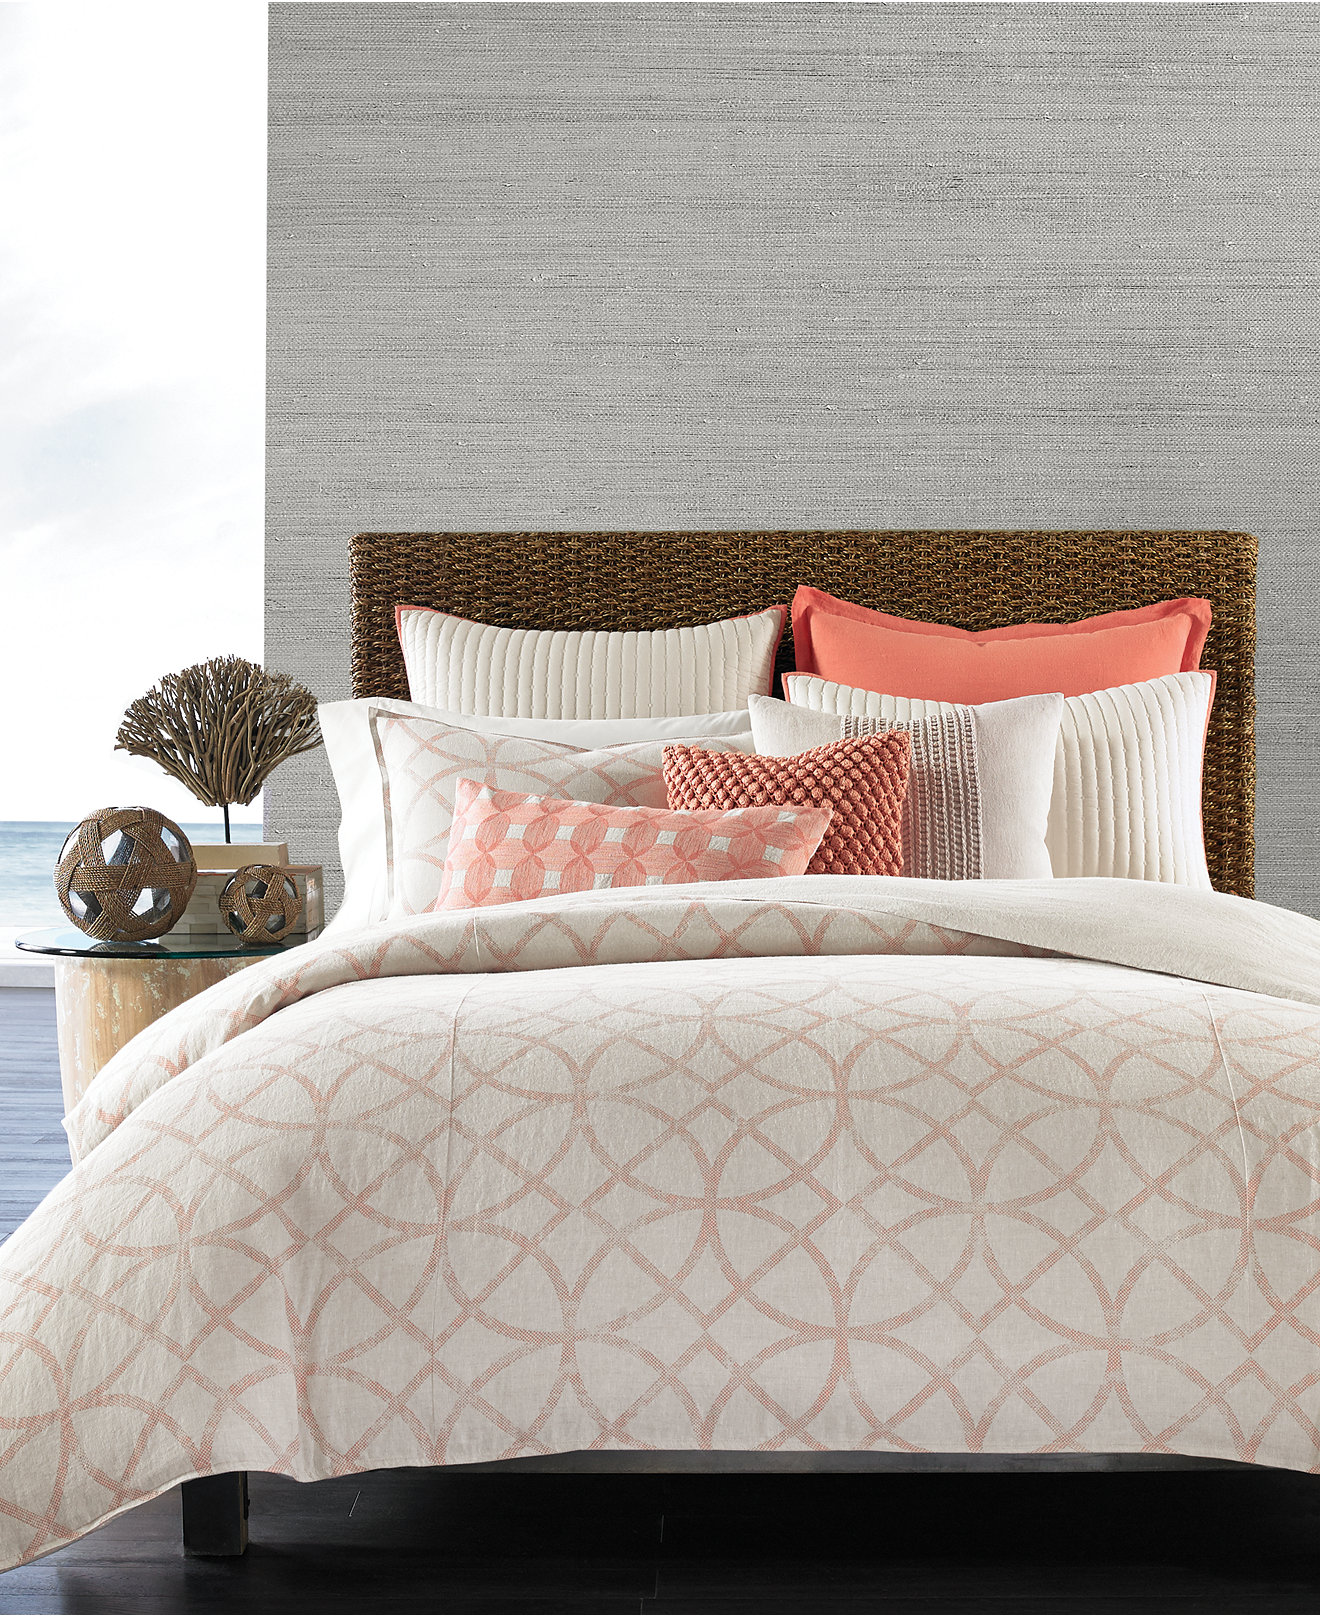 Bedspread designs texture - Hotel Collection Textured Lattice Linen Bedding Collection Only At Macy S Bedding Collections Bed Bath Macy S